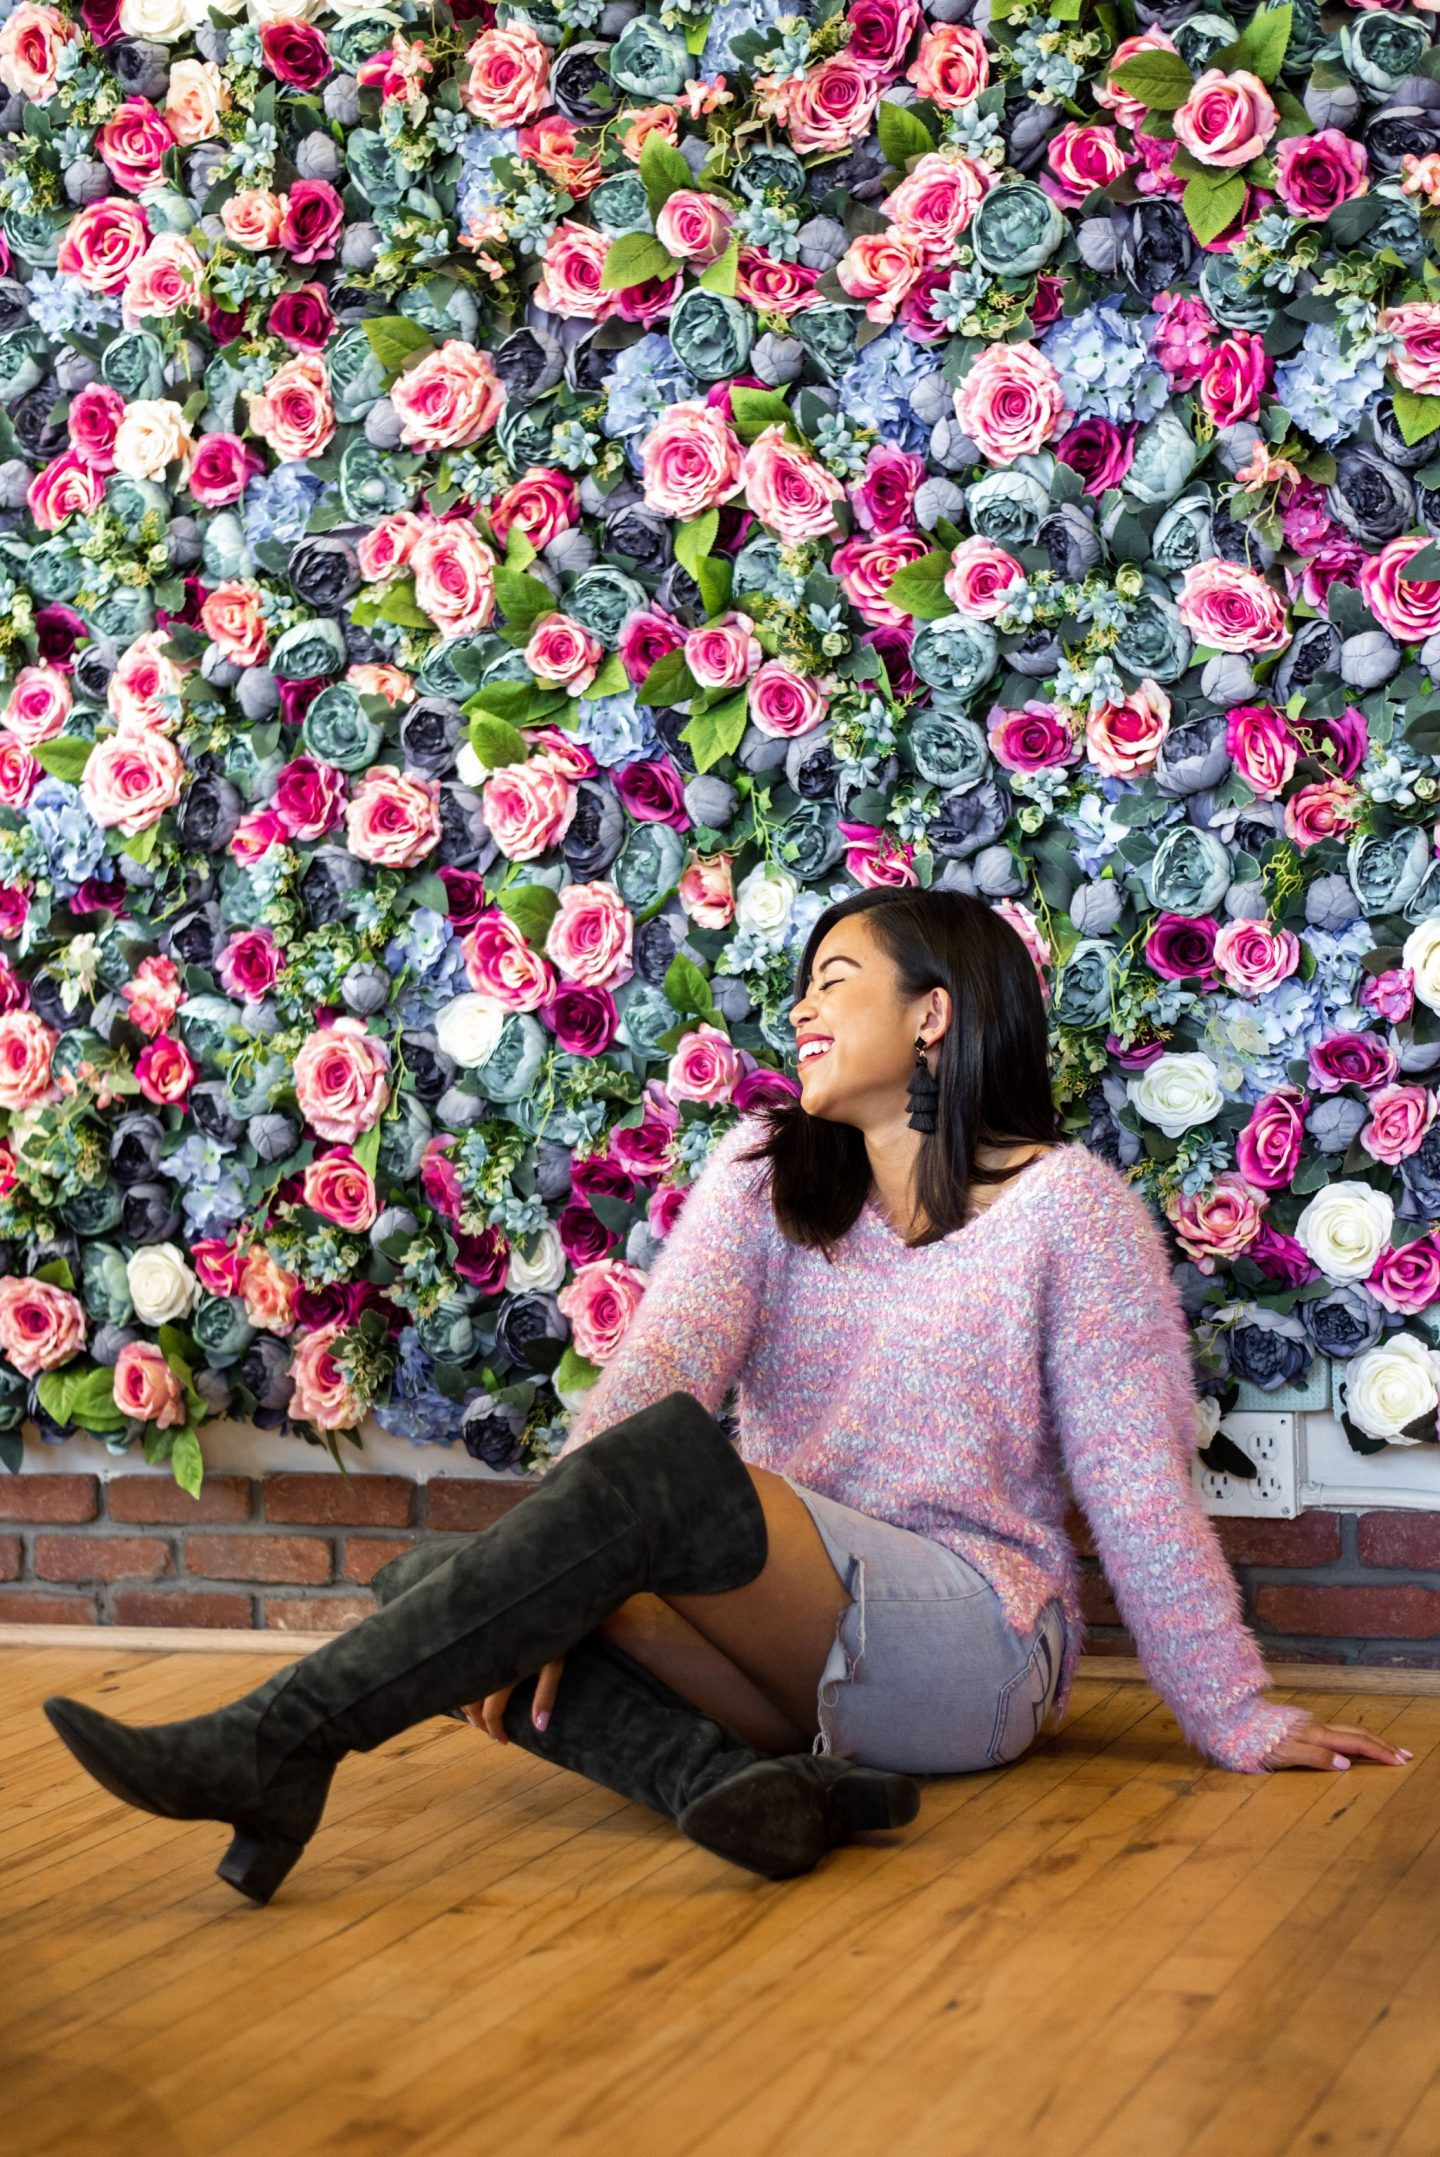 Seattle's Most Instagrammable Places - Seattle's Most Instagrammable Places in Ballard – Instagram worthy places in Seattle – instagrammable spots – most instagrammable places in Washington state - floral wall - poke lover ballard